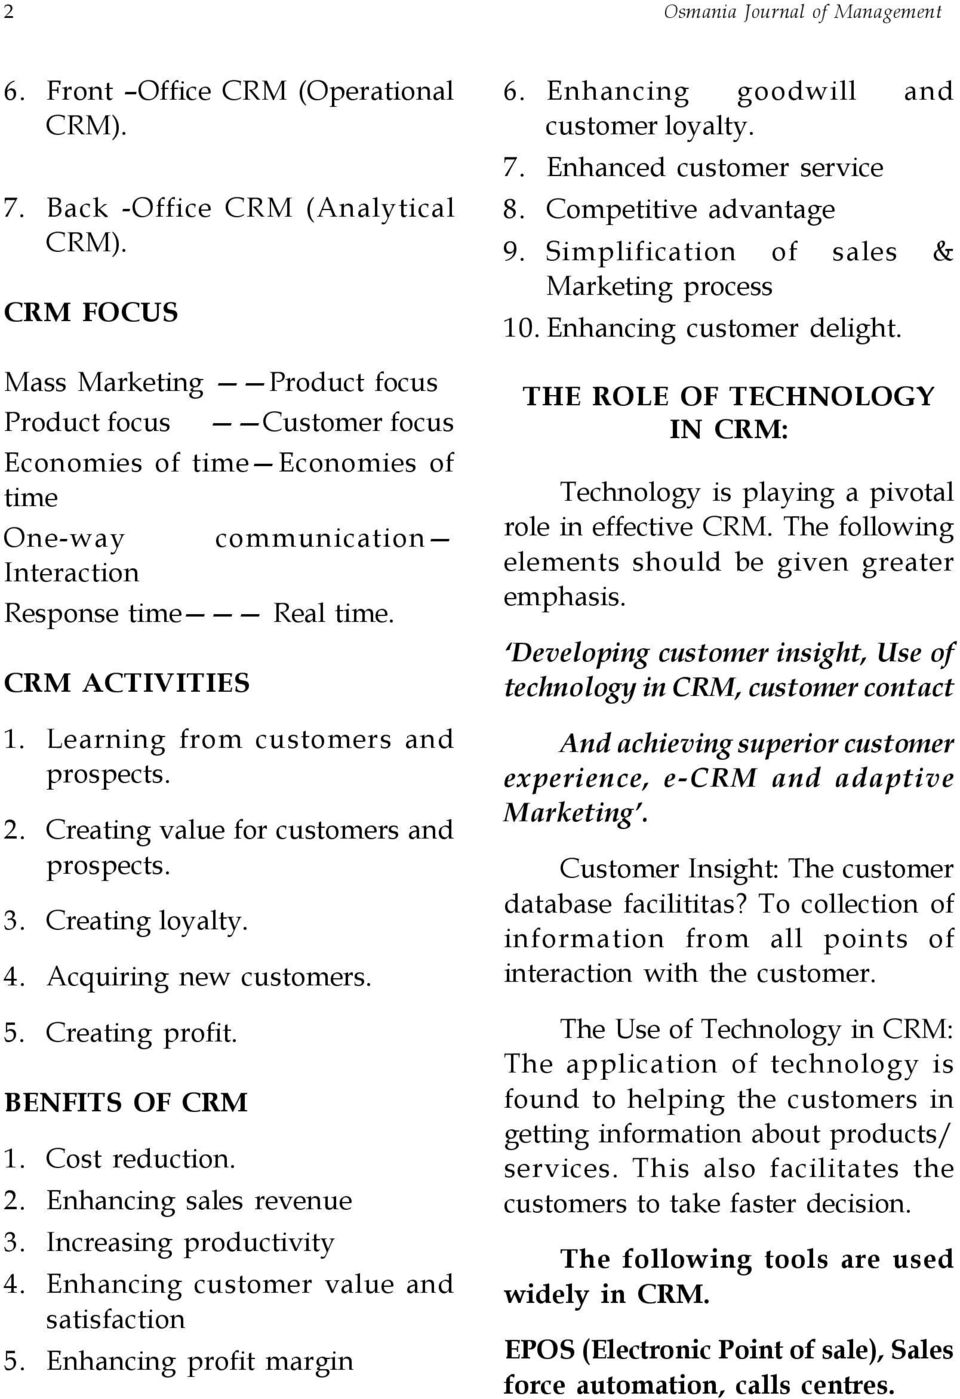 Learning from customers and prospects. 2. Creating value for customers and prospects. 3. Creating loyalty. 4. Acquiring new customers. 5. Creating profit. BENFITS OF CRM 1. Cost reduction. 2. Enhancing sales revenue 3.